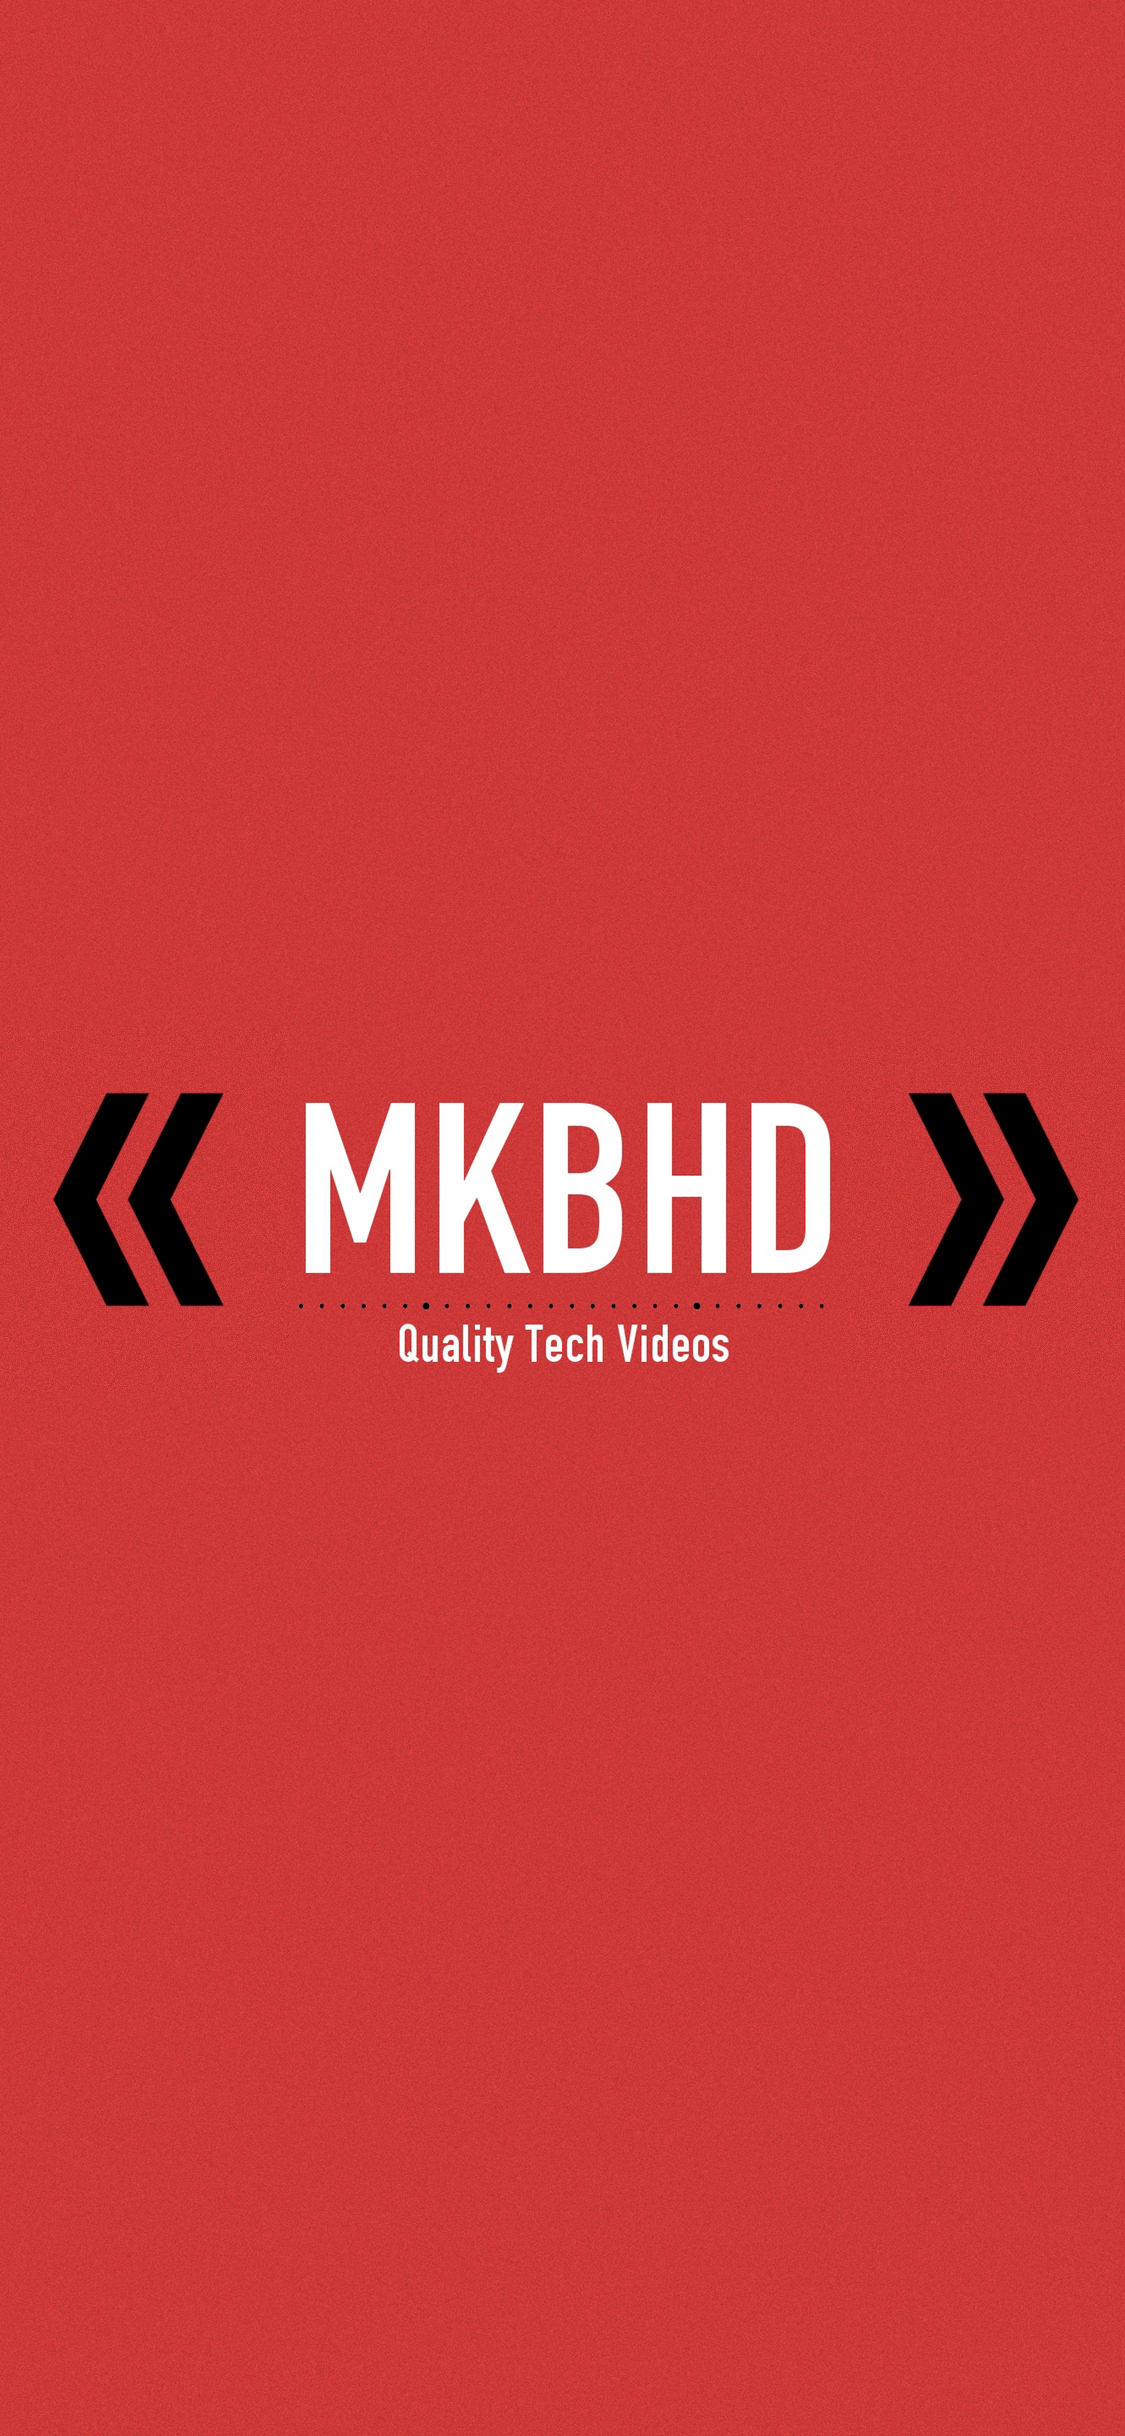 Iphone X Wallpaper Official Official Mkbhd Wallpapers For Iphone Ipad Amp Desktop